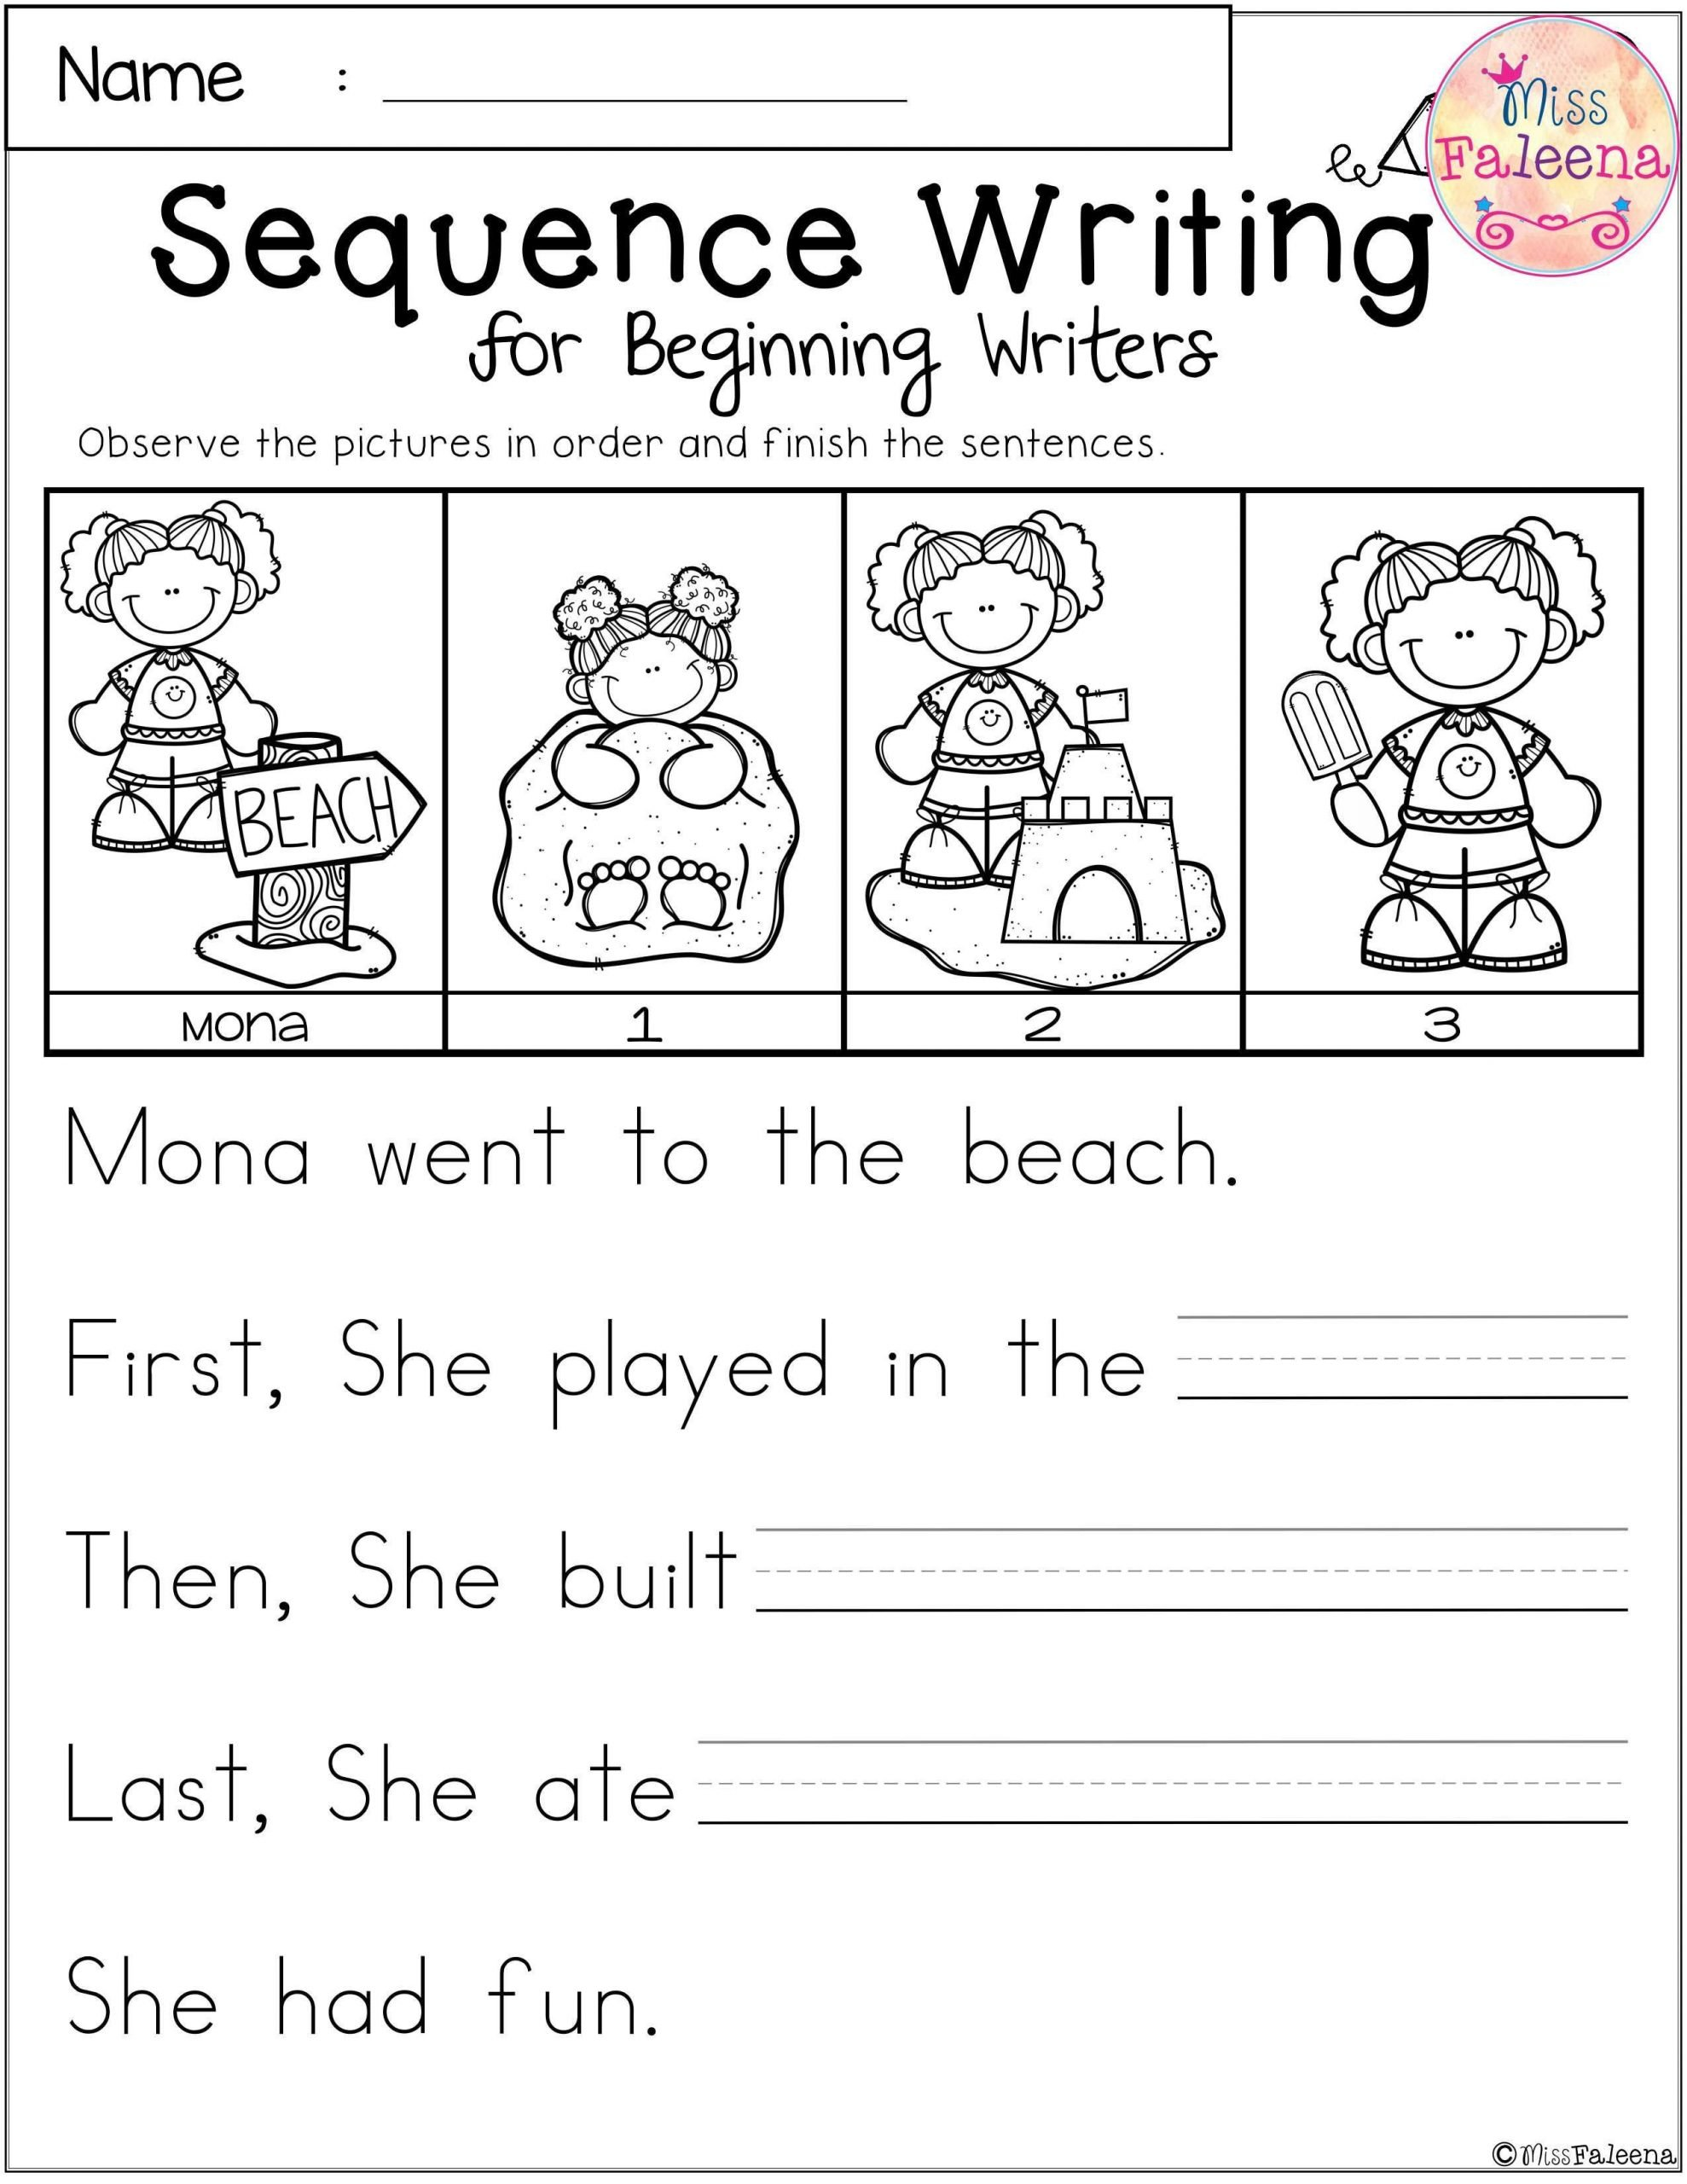 Story Sequence Worksheets for Kindergarten Free Sequence Writing for Beginning Writers